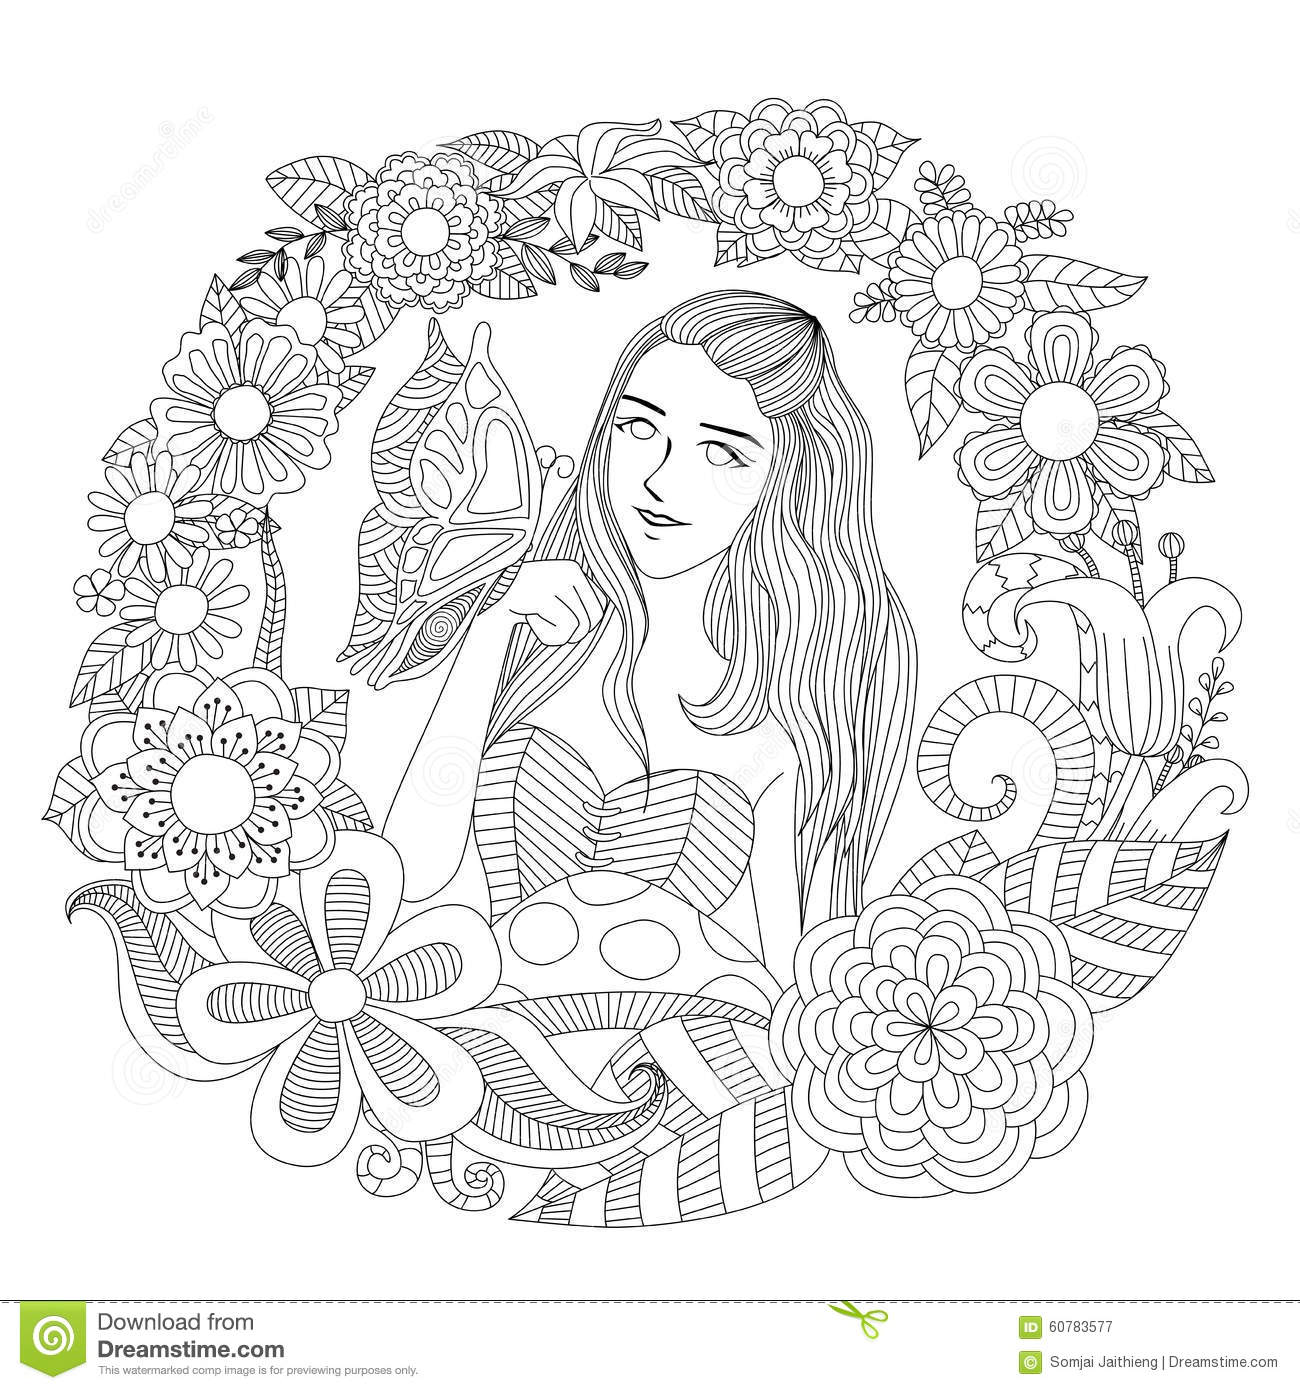 Pretty girl coloring pages - Pretty Girl Playing With Butterfly In The Flowers Garden Line Art For Coloring Page For Adult